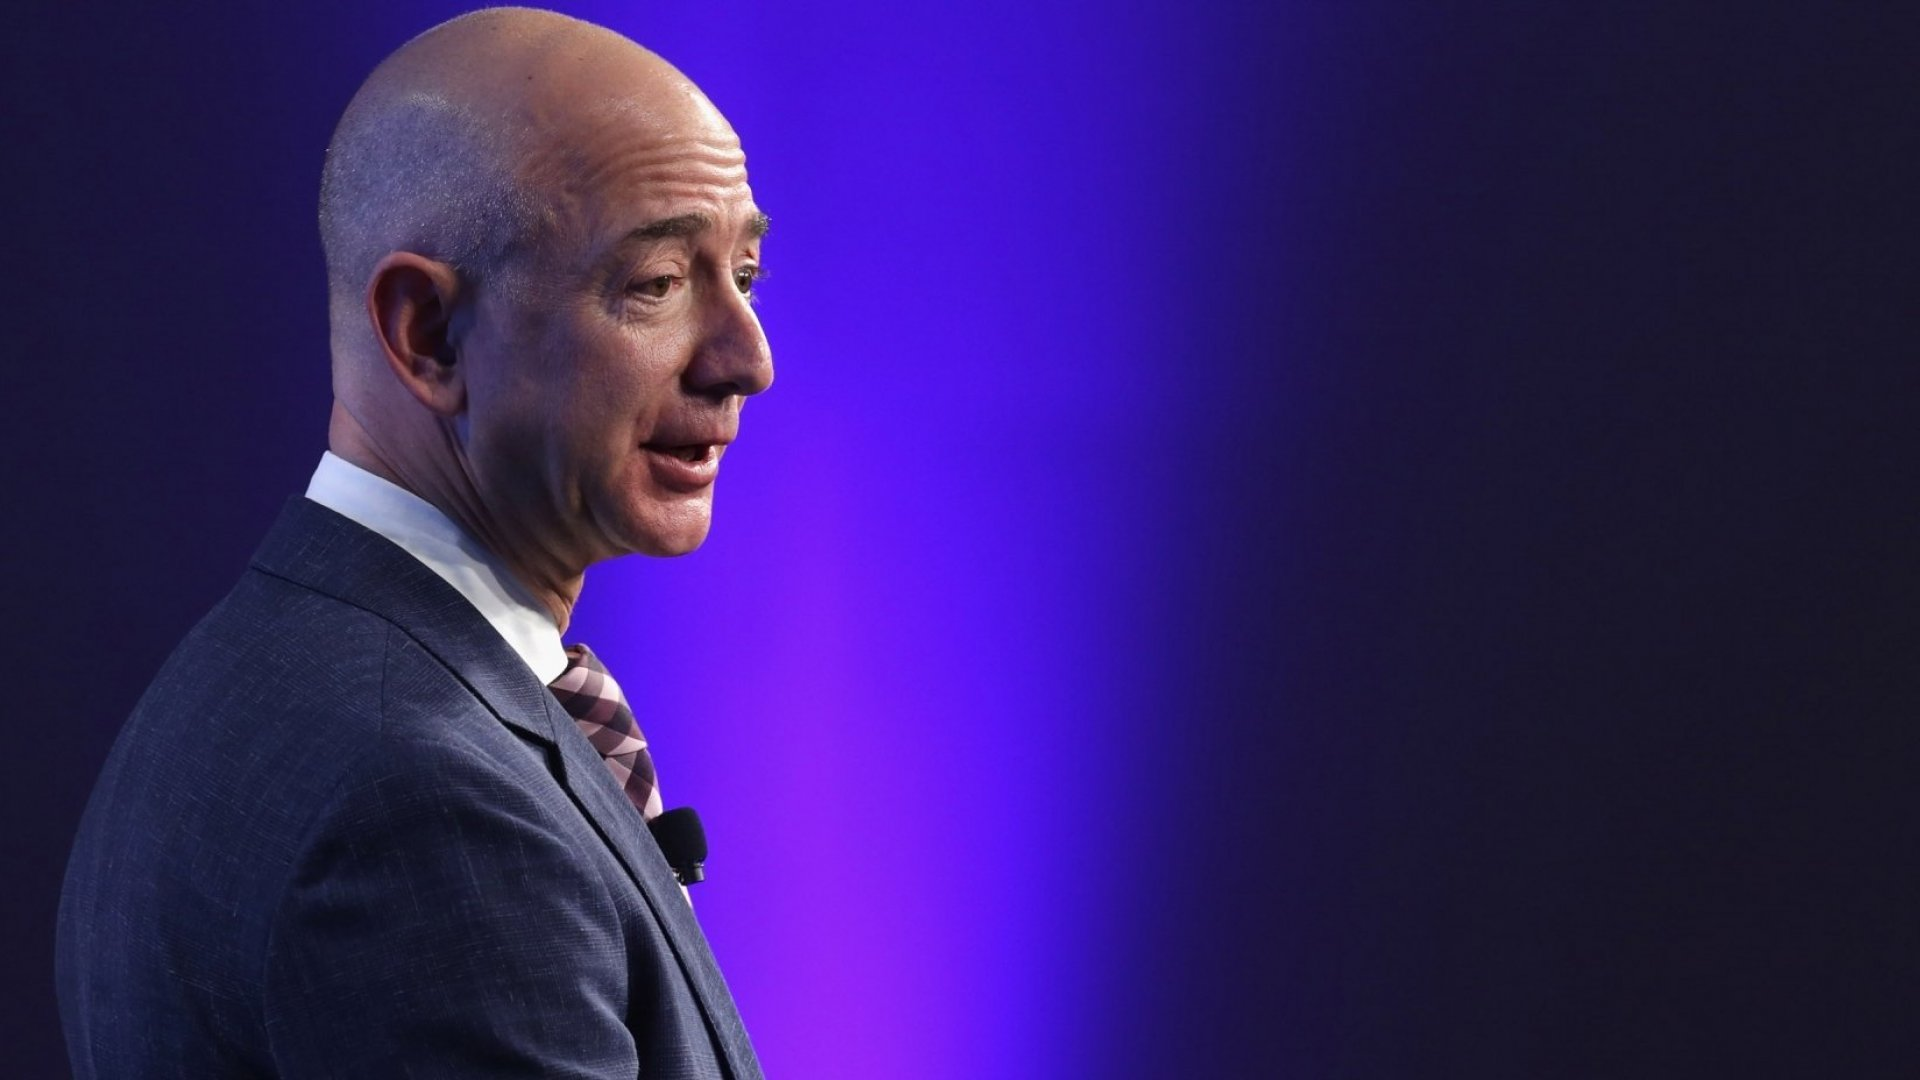 Jeff Bezos Just Released His Annual Shareholder Letter and Said 1 Counterintuitive Thing Is the Key to Continued Business Growth